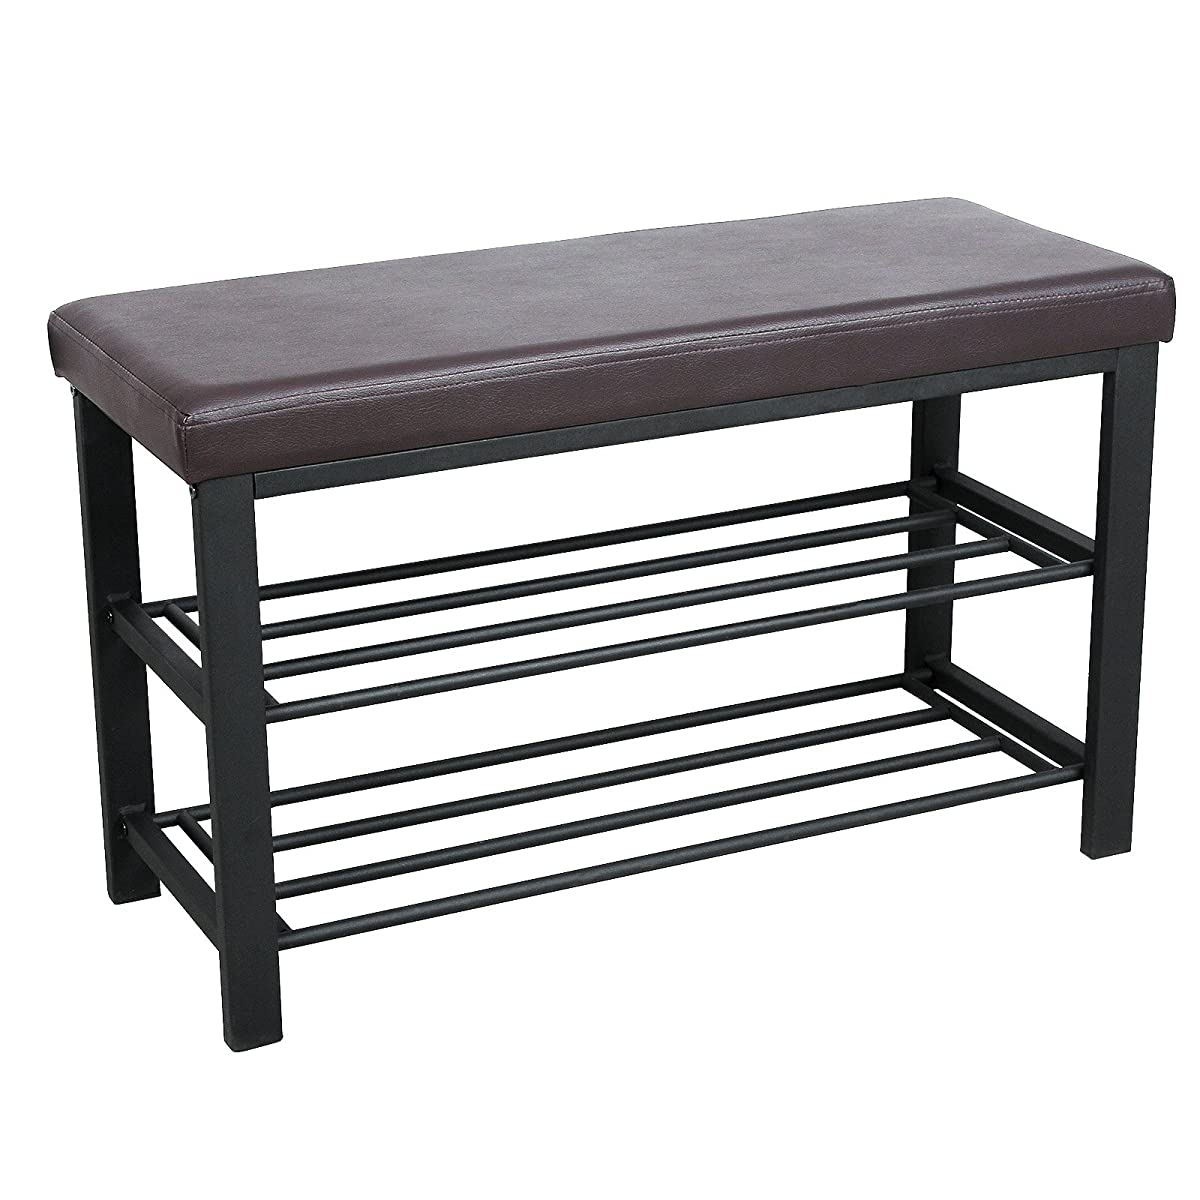 Songmics metal shoe bench 2 tier shoe rack entryway shoe storage organizer faux leather top ulbs58z Narrow entry bench